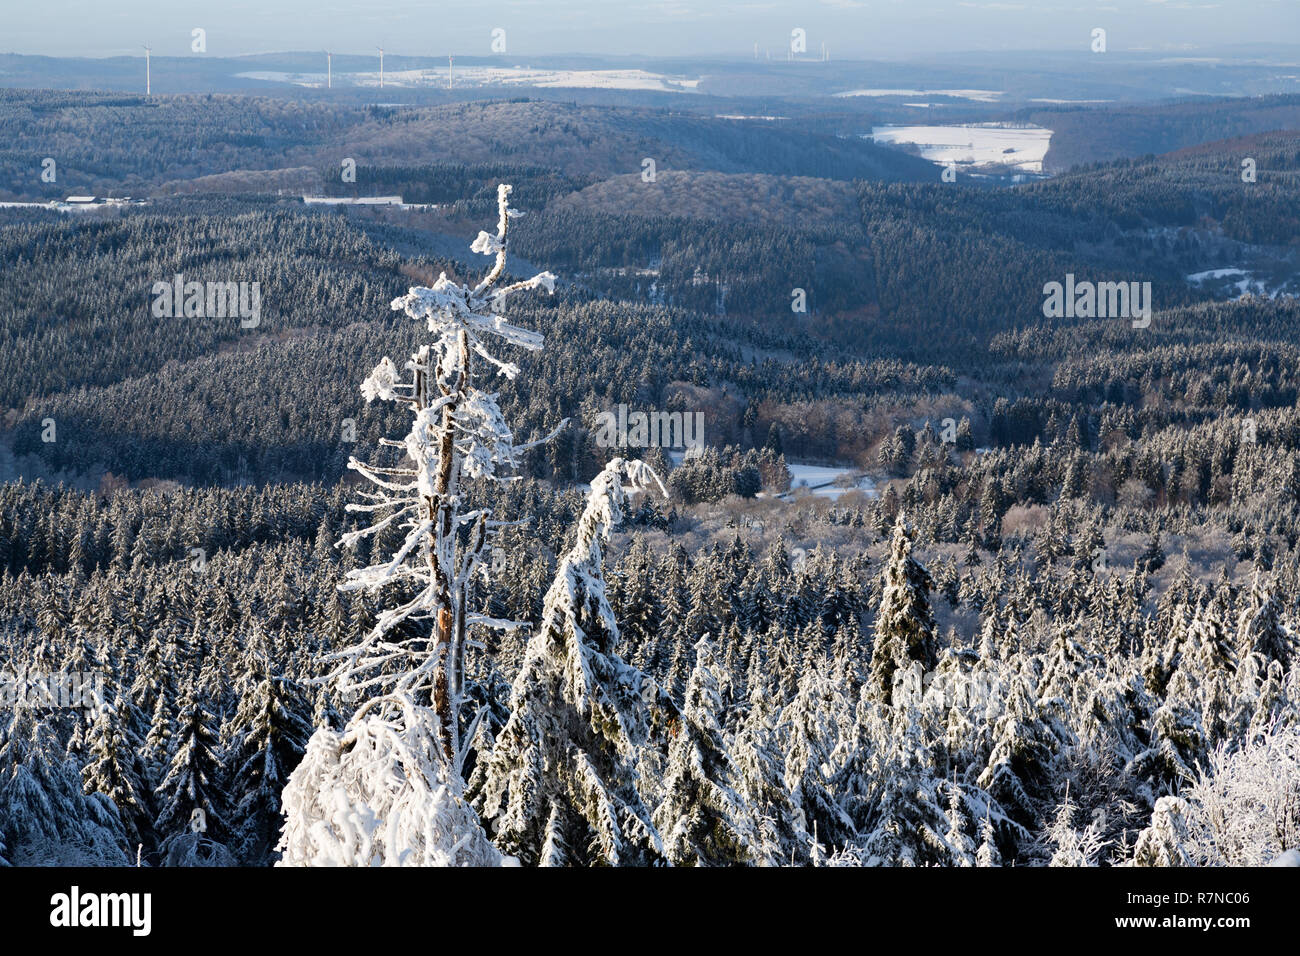 Panoramic scenic areal view from top of mountain landscapes winter valley, snow-capped peaks of mountains and trees, hills. Concept Swiss Alps, Krasnaya Polyana, Sochi, Sheregesh, Austria - Stock Image